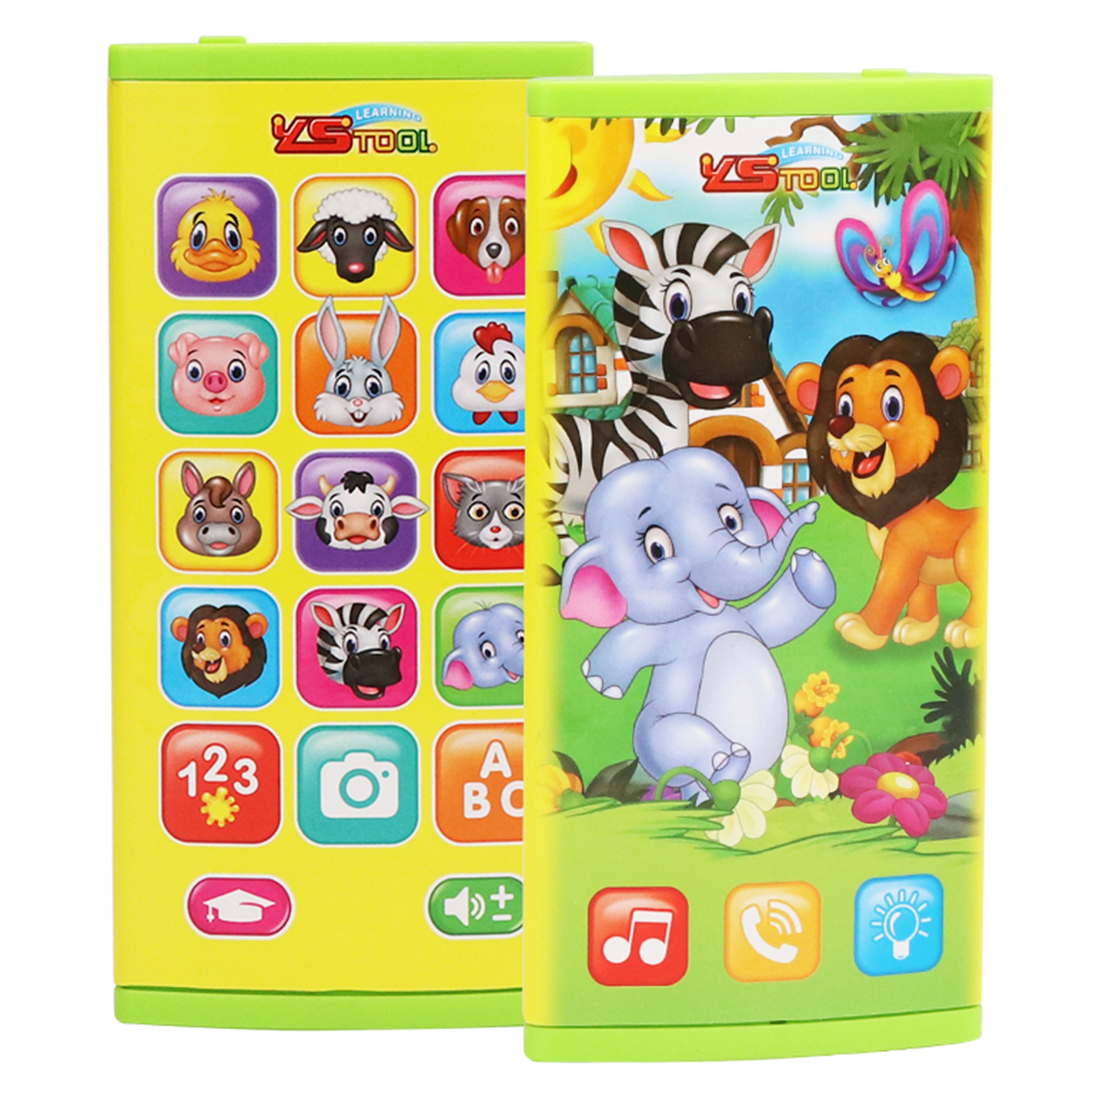 Hot Animal Theme Double-Sided Screen Multi-Function Mobile Phone Early Learning Educational Toy For 2-3 Years Old Toddler Gift